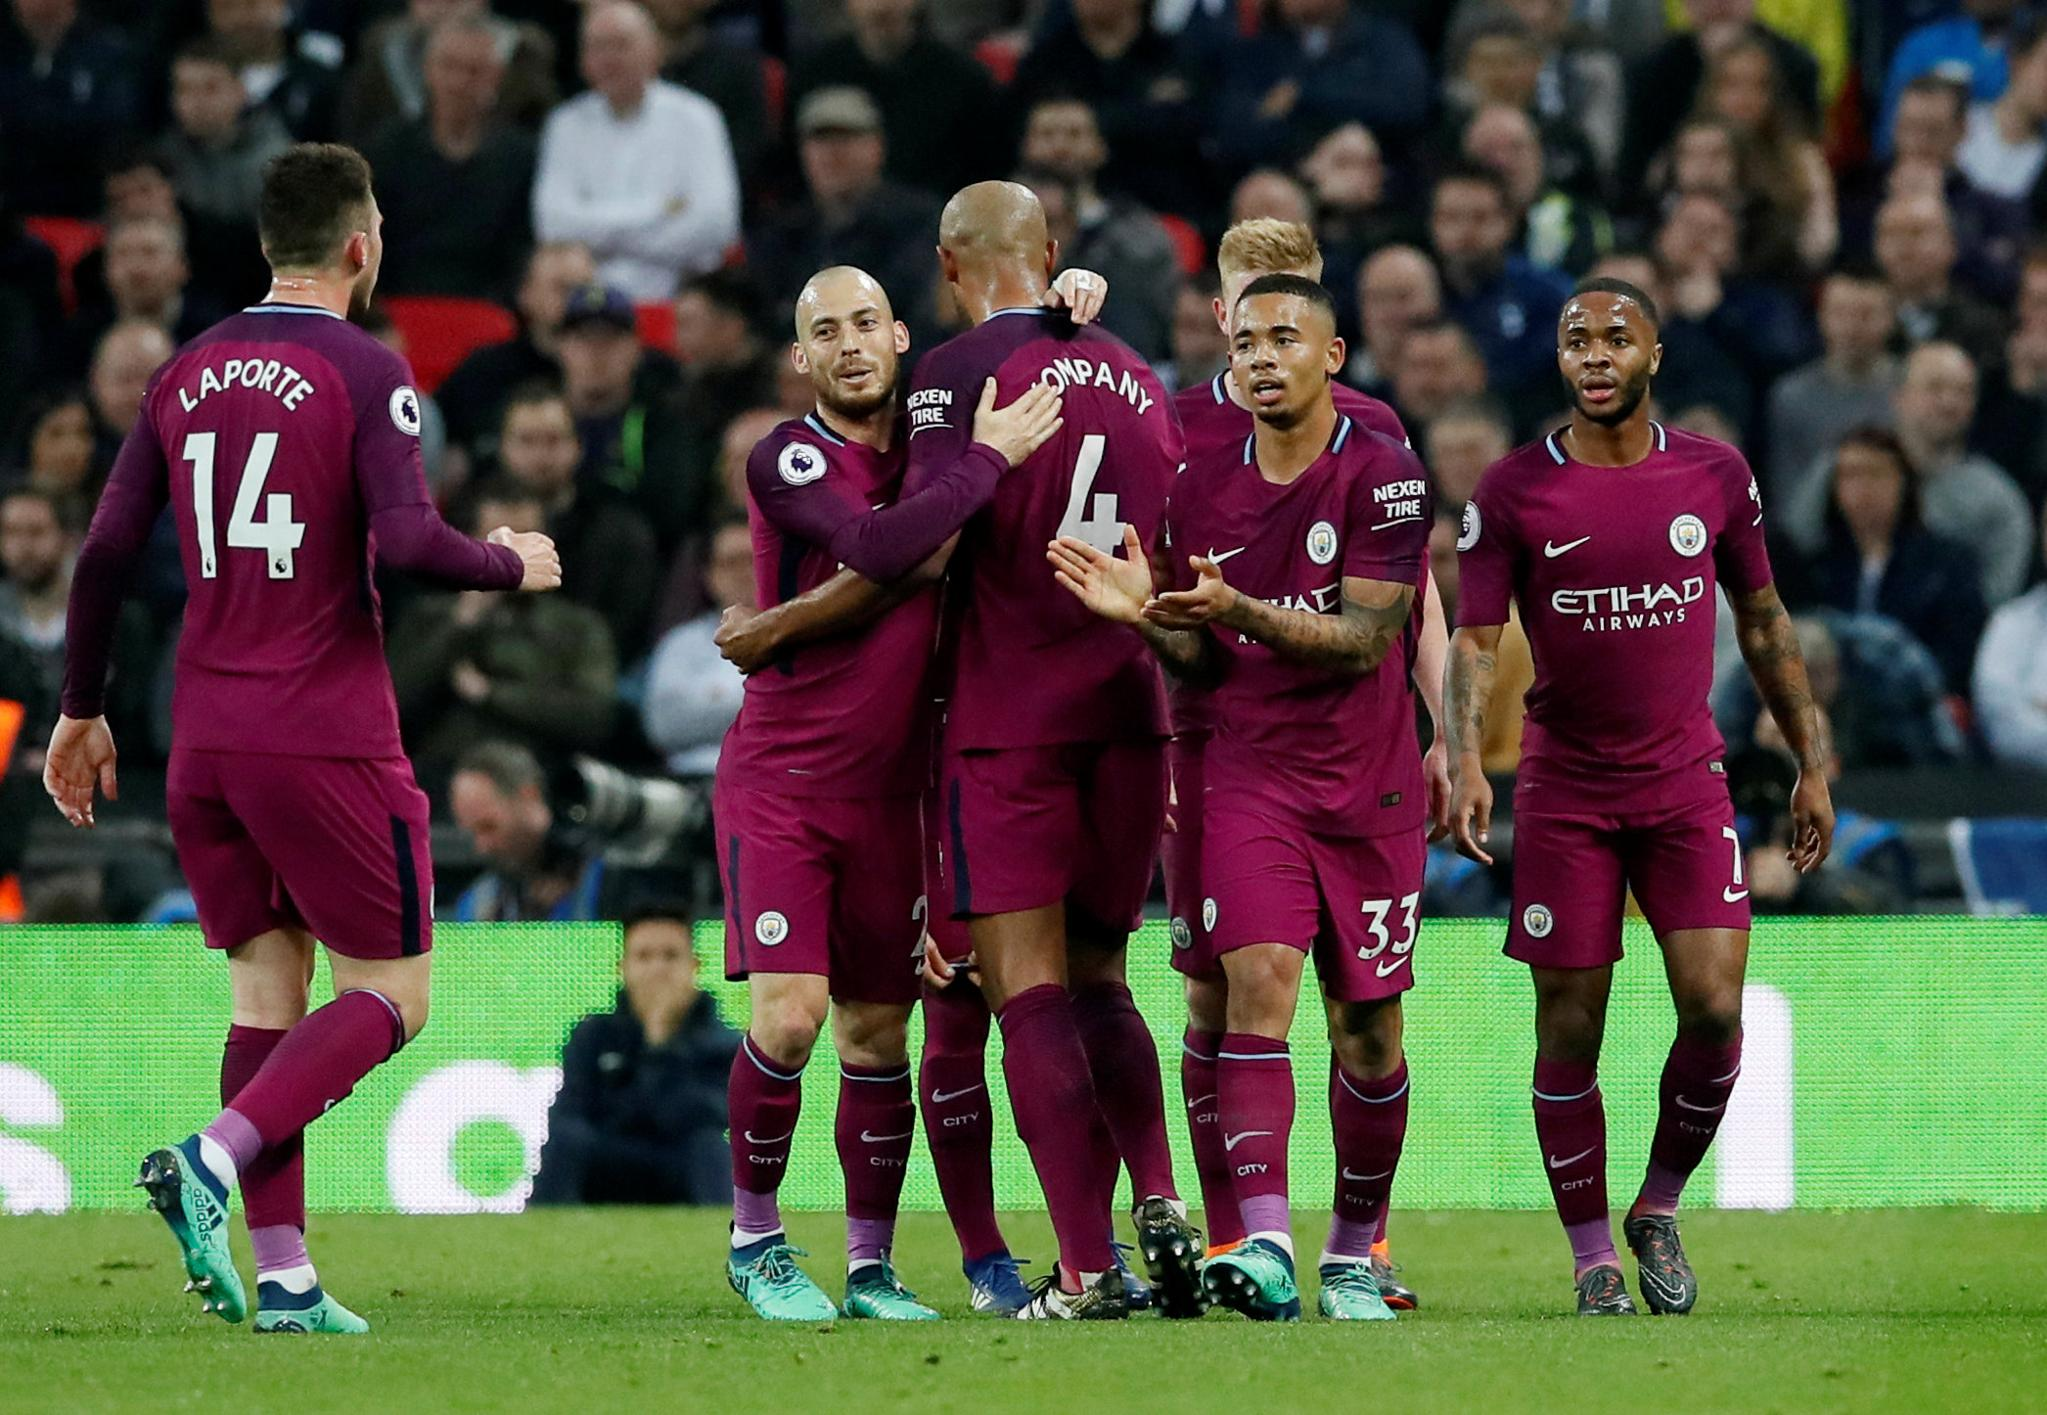 Man City Close In On EPL Title With Win Over Spurs